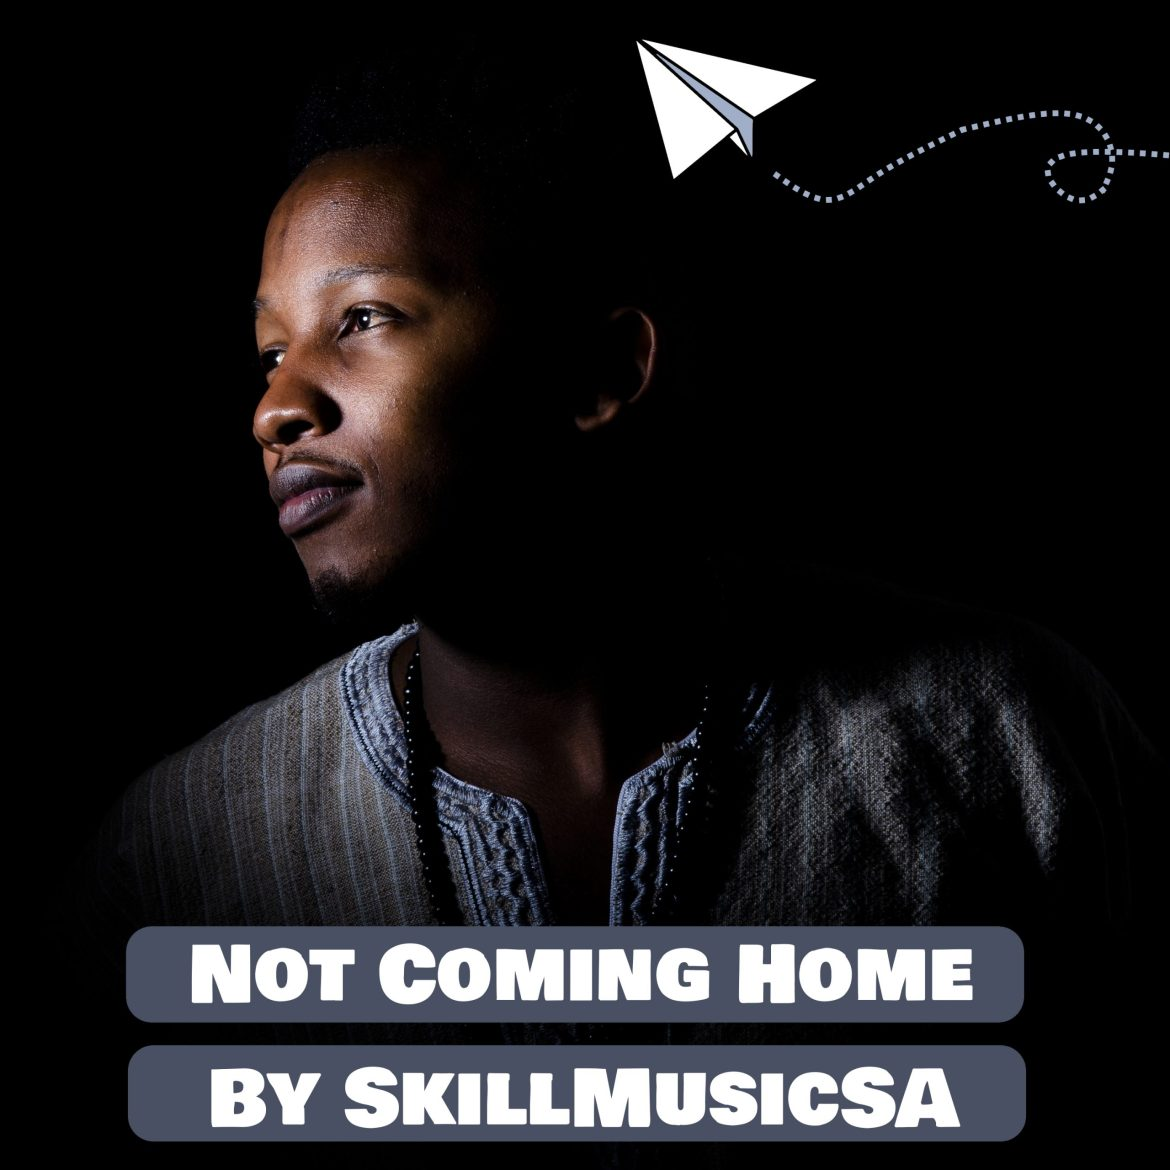 SkillMusicSA is Not Coming Home. Brand New Single off the new EP is now PLAYLISTED High Rotation on Bafana FM. Tune in!